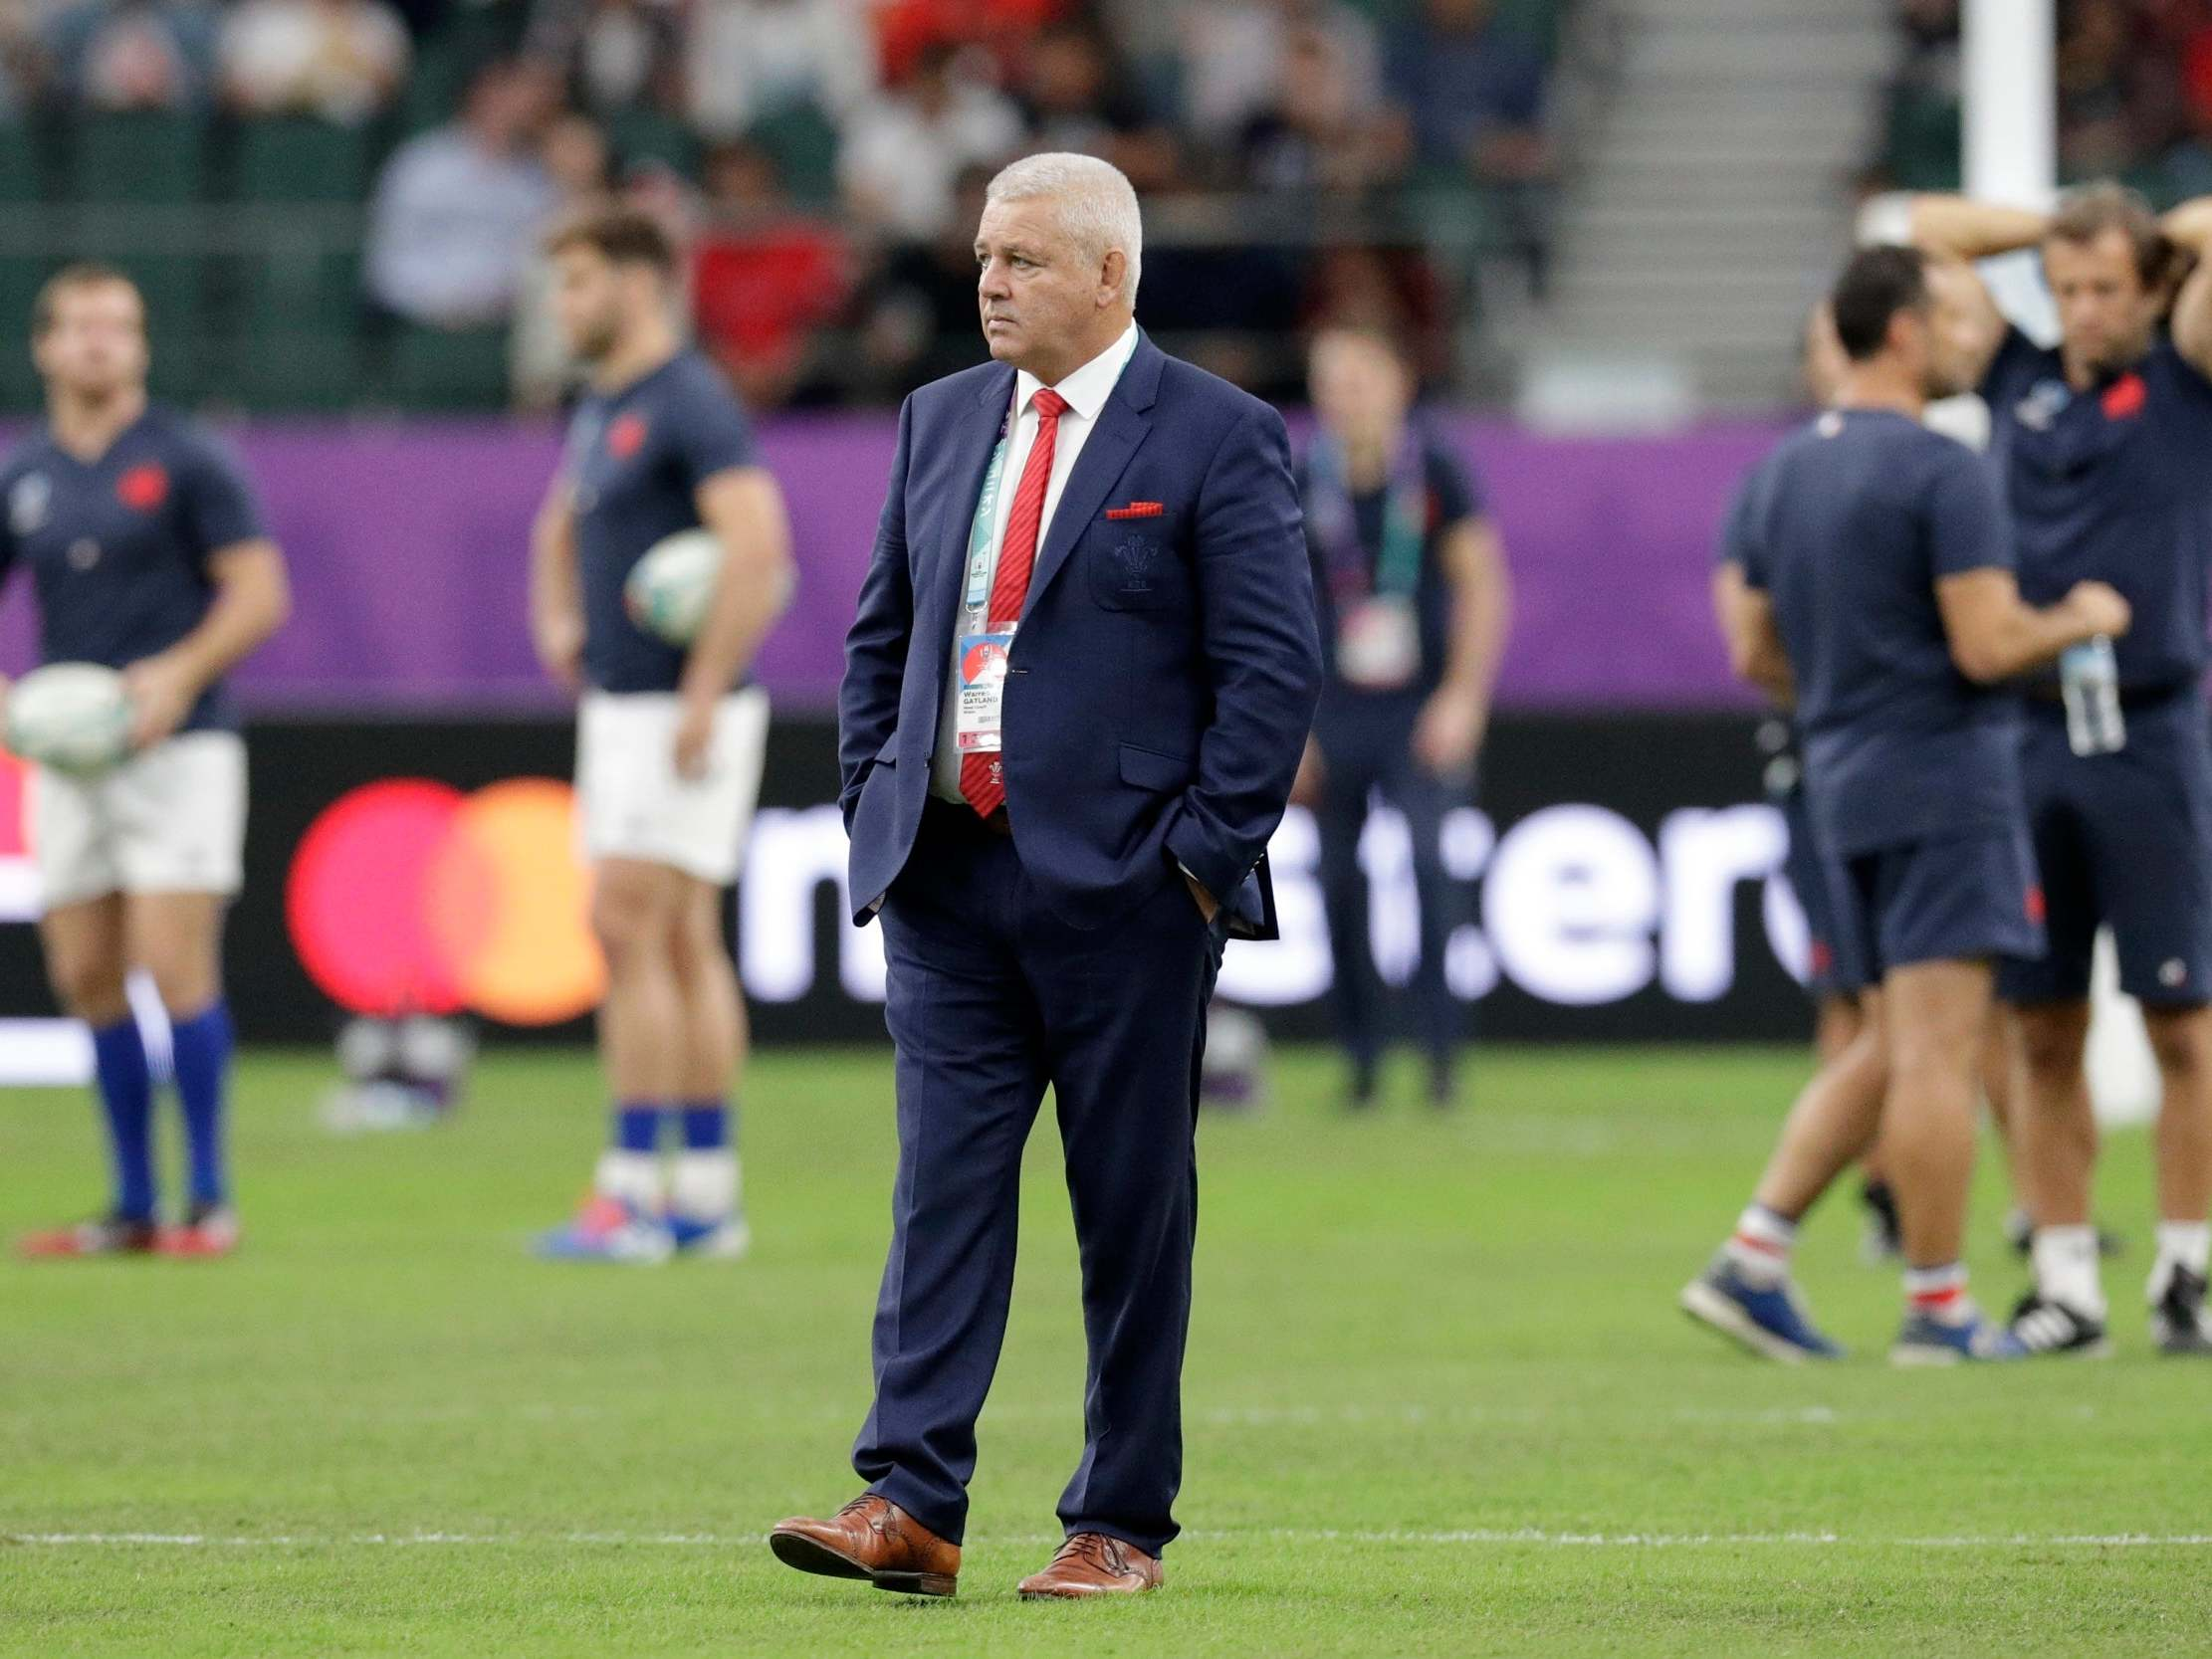 Wales vs France, Rugby World Cup 2019 LIVE: Latest score and updates from today's quarter-finals